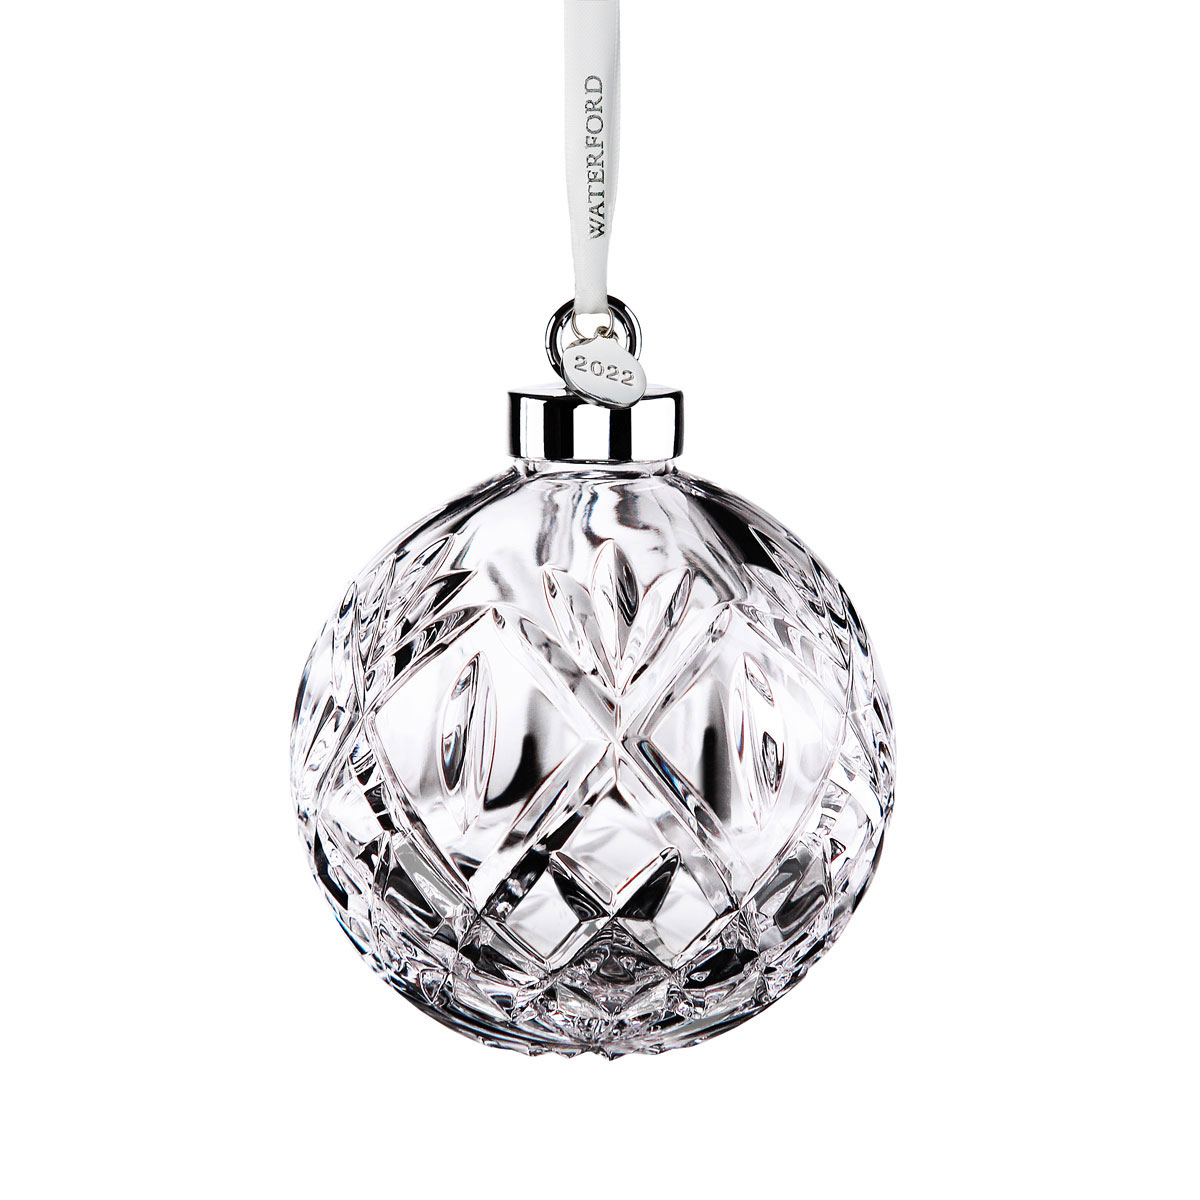 Wterford Christmas 2020 Ornaments Waterford Crystal 2020 Huntley Ball Ornament, Limited Edition